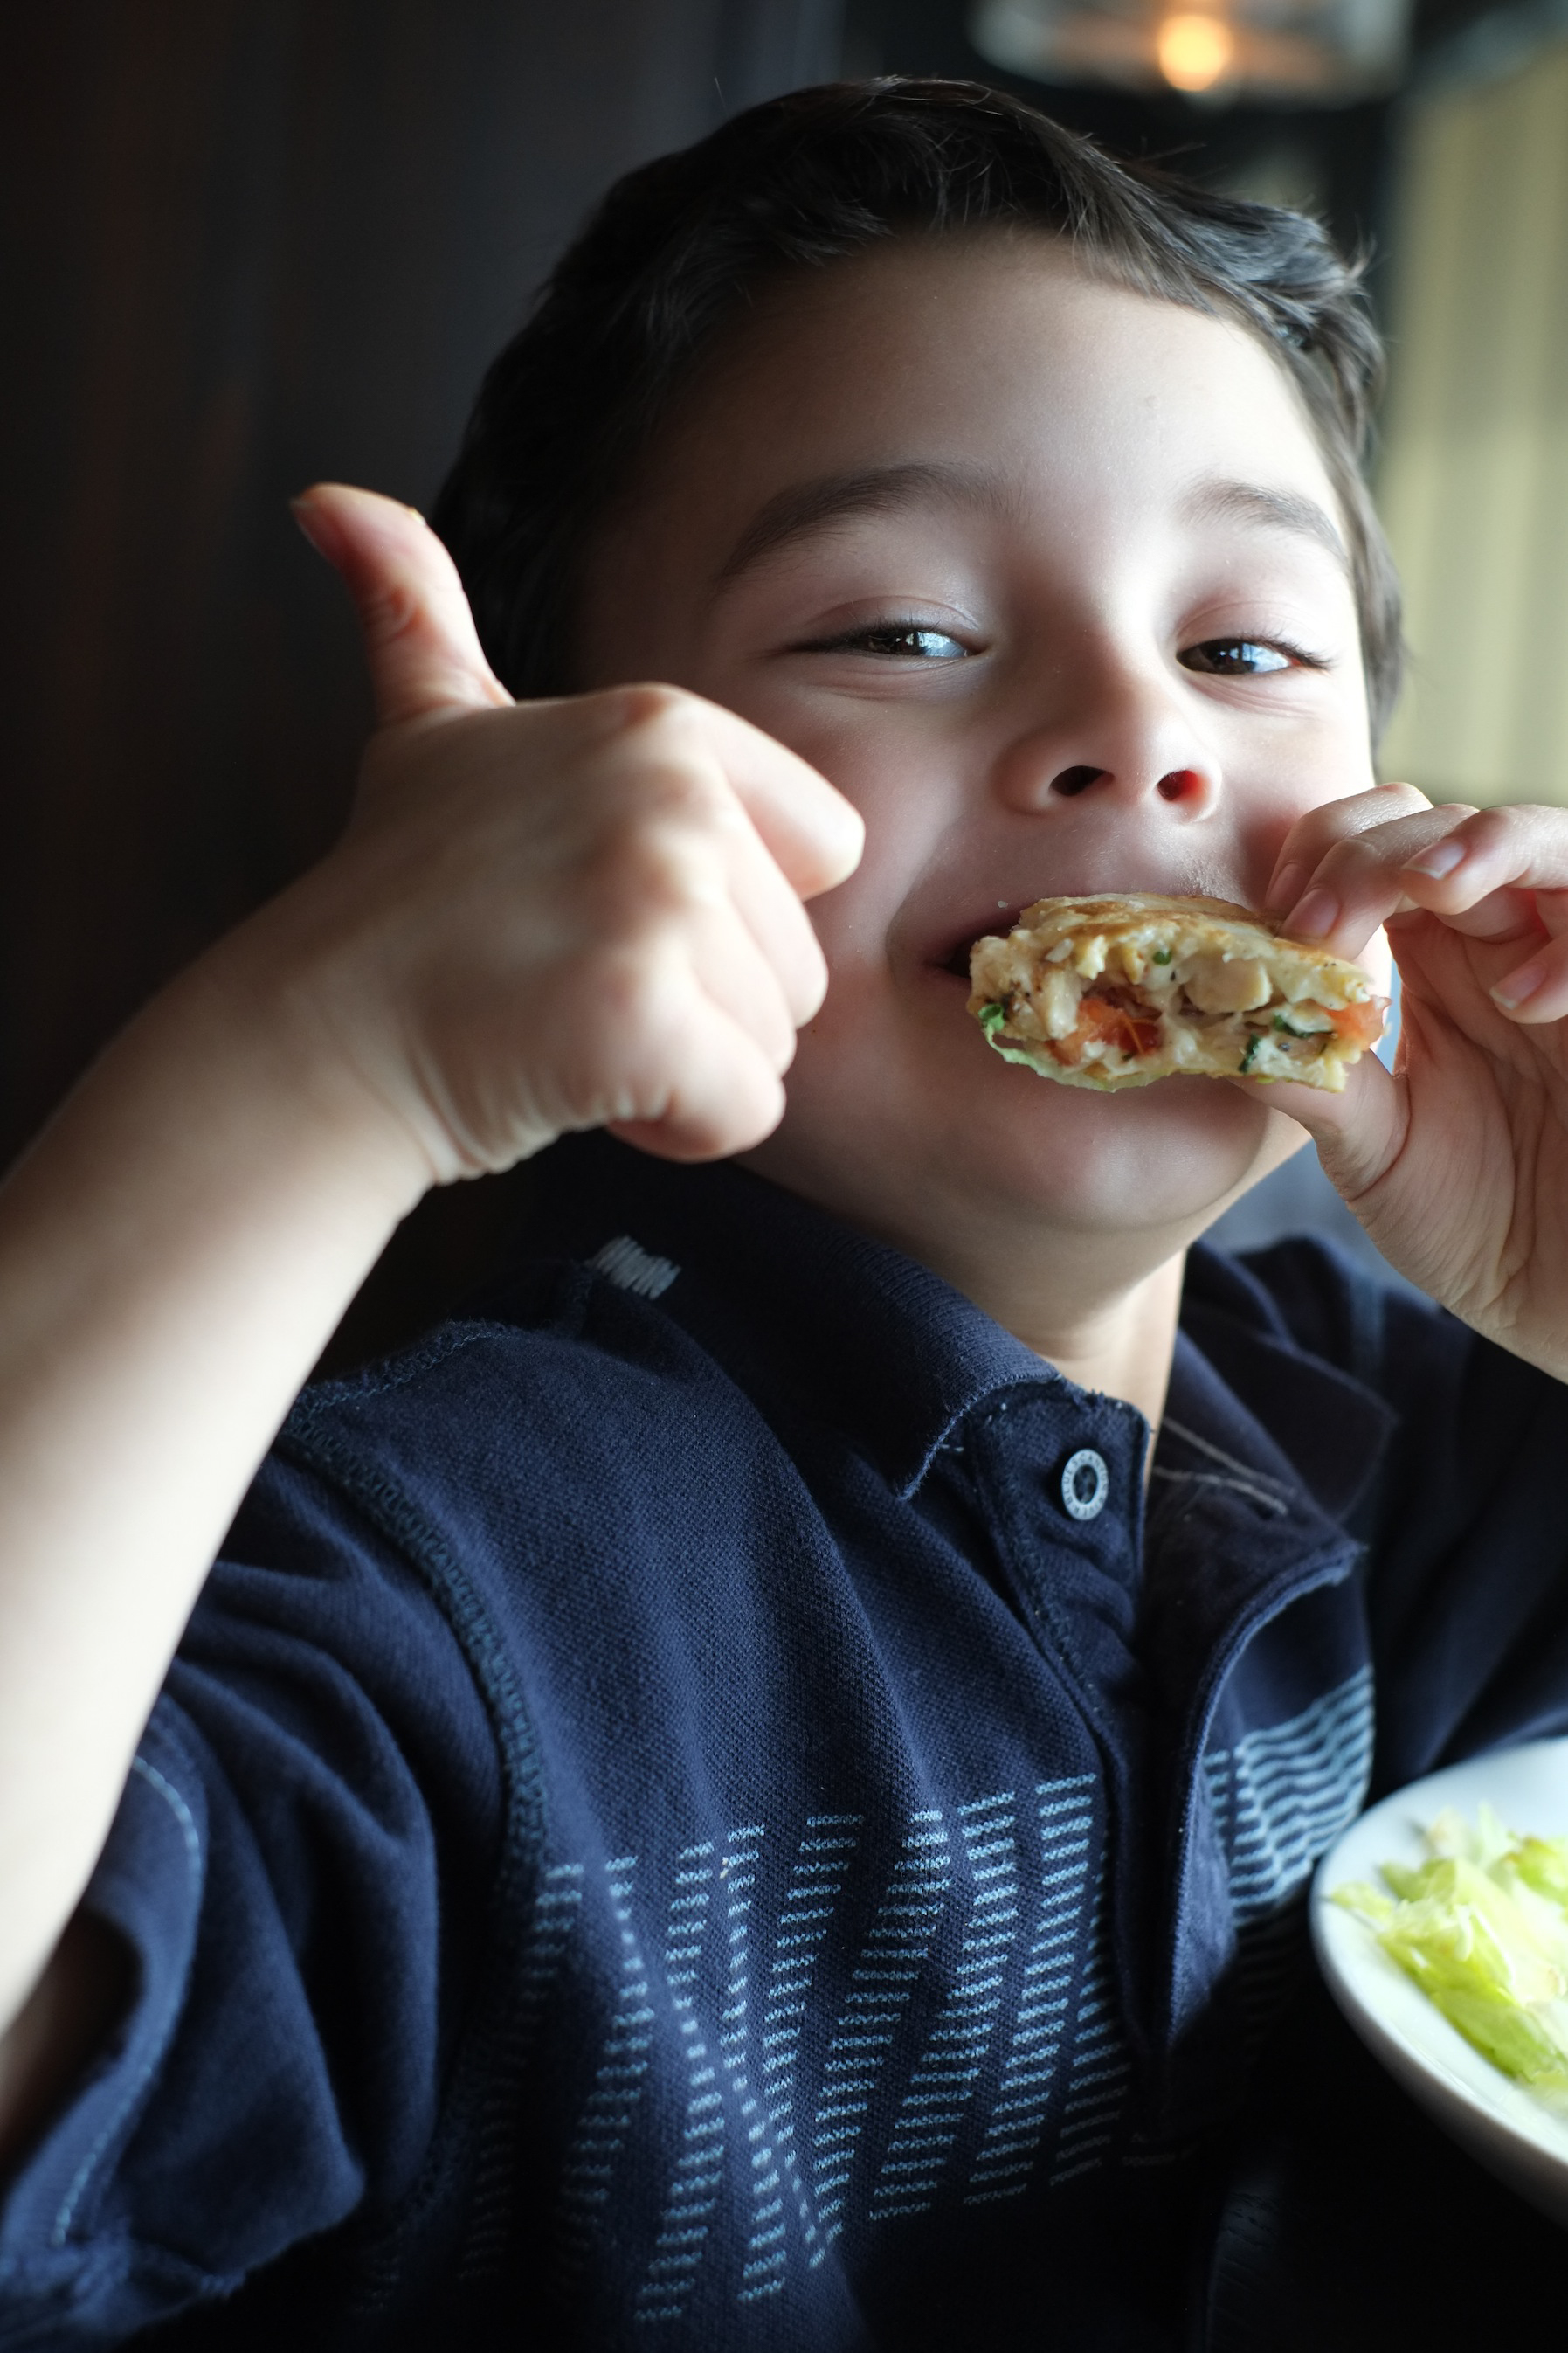 2013 - 5-year-old Abraham enjoying a nice family outing and special treat at the Grand Marlin restaurant in Pensacola.